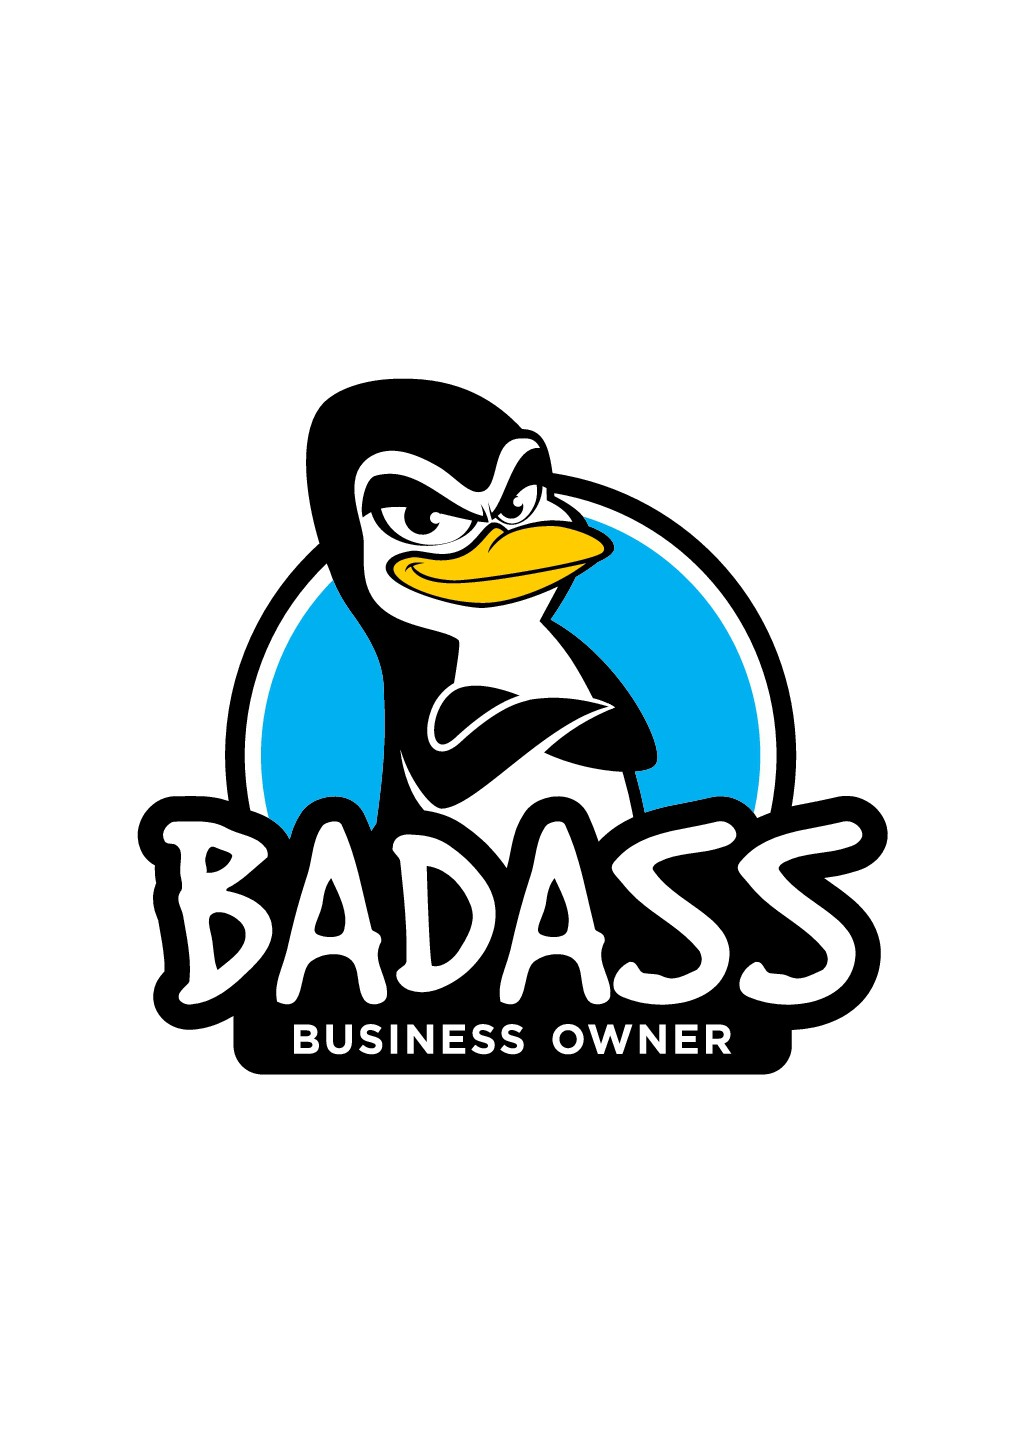 Are You A Badass?